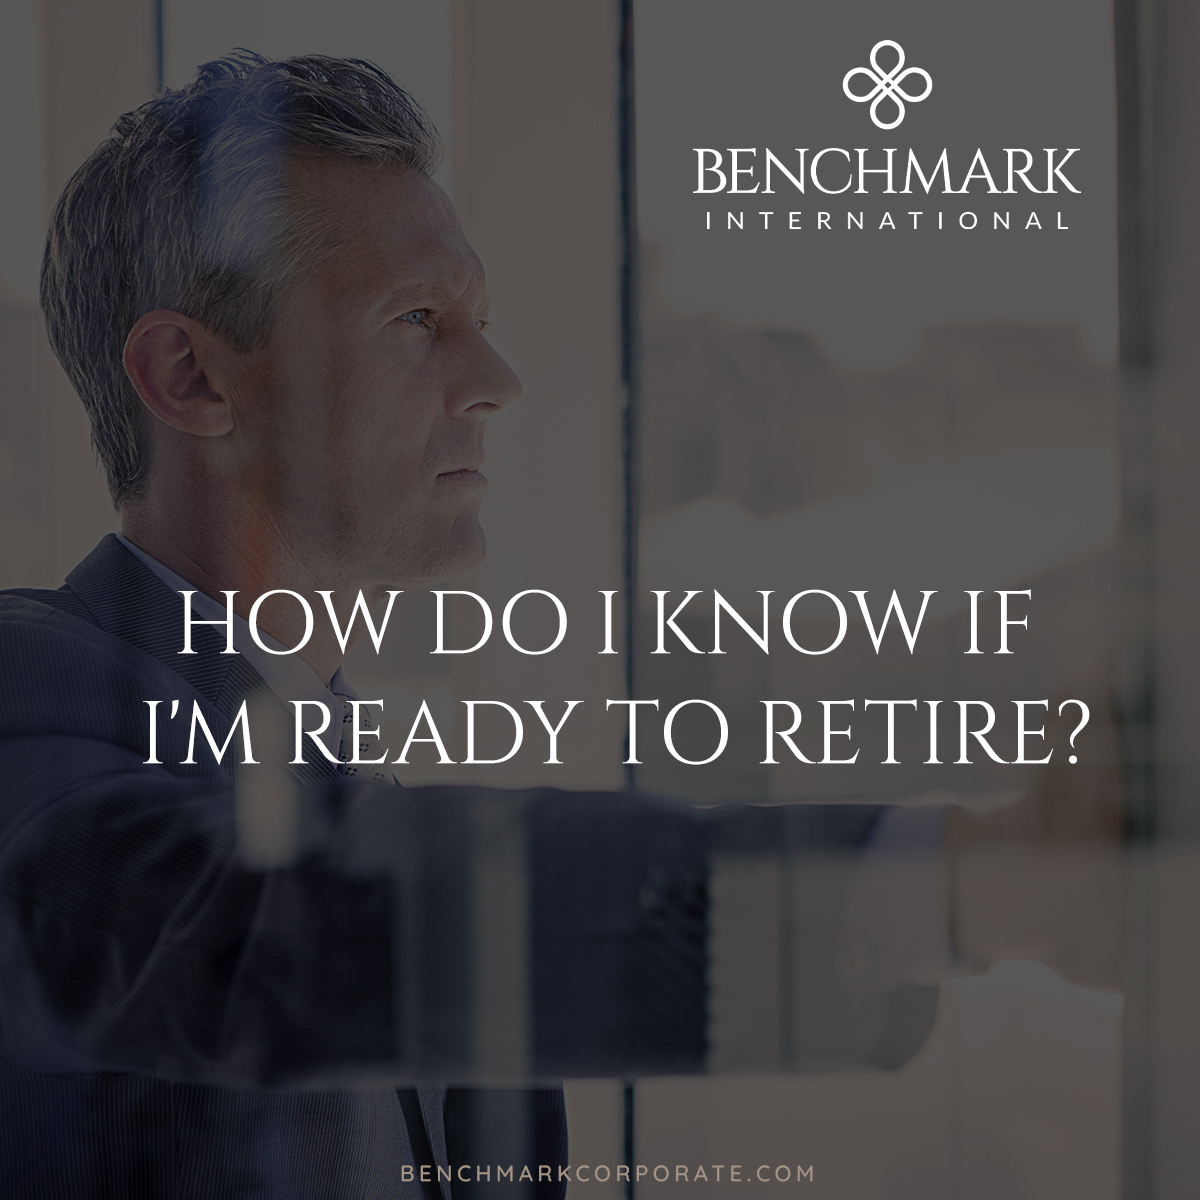 How-do-i-know-im-ready-to-retire-Social-1